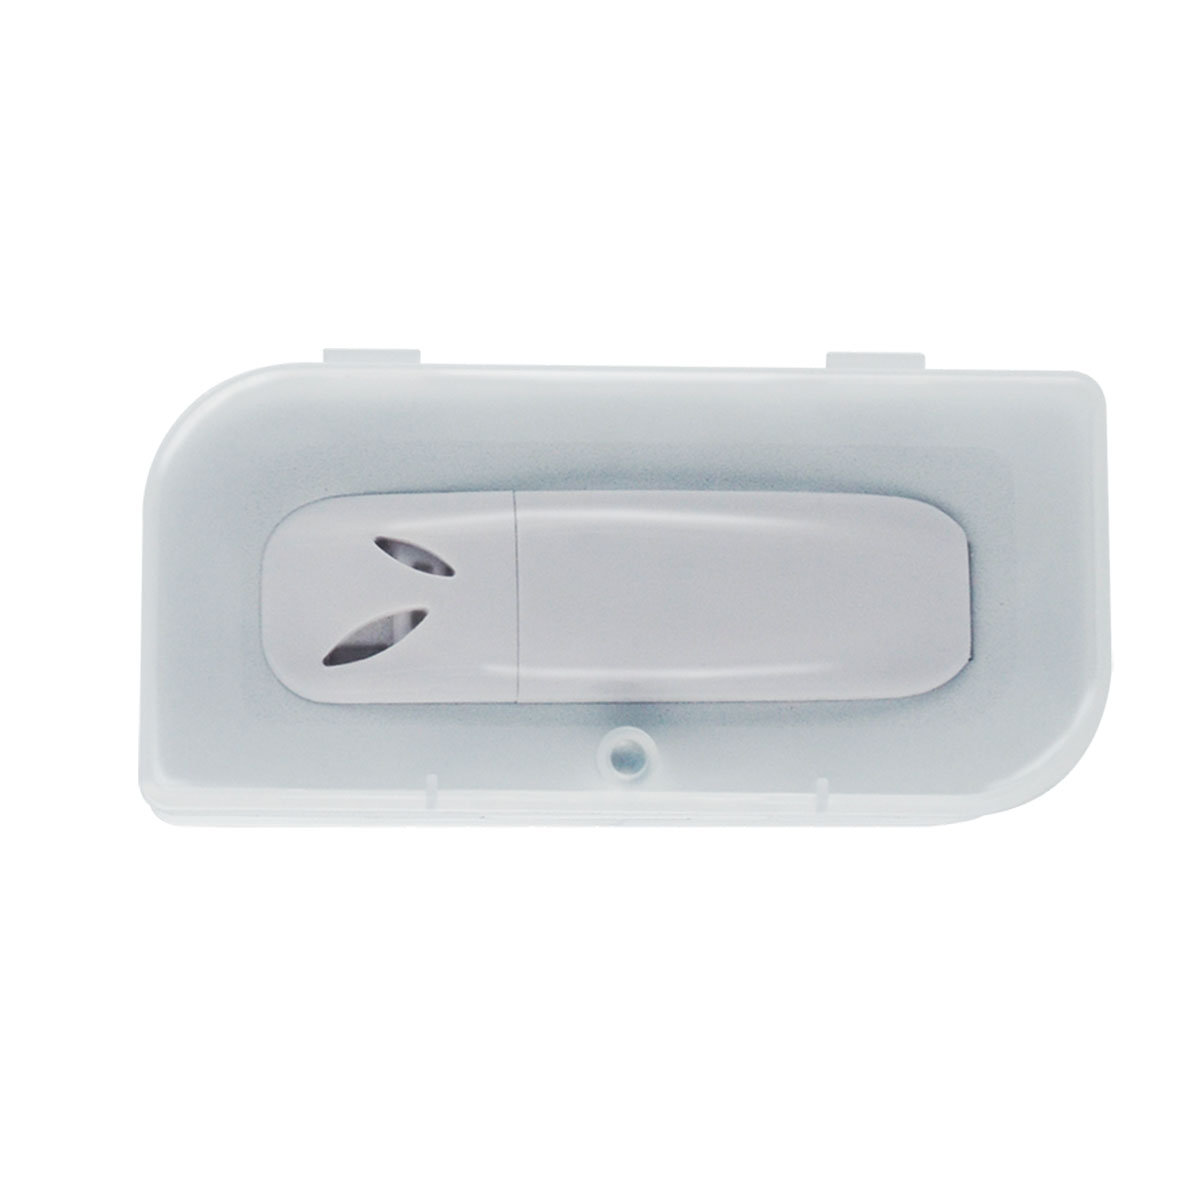 White USB Diffuser with Clear Case and Magnet Closure